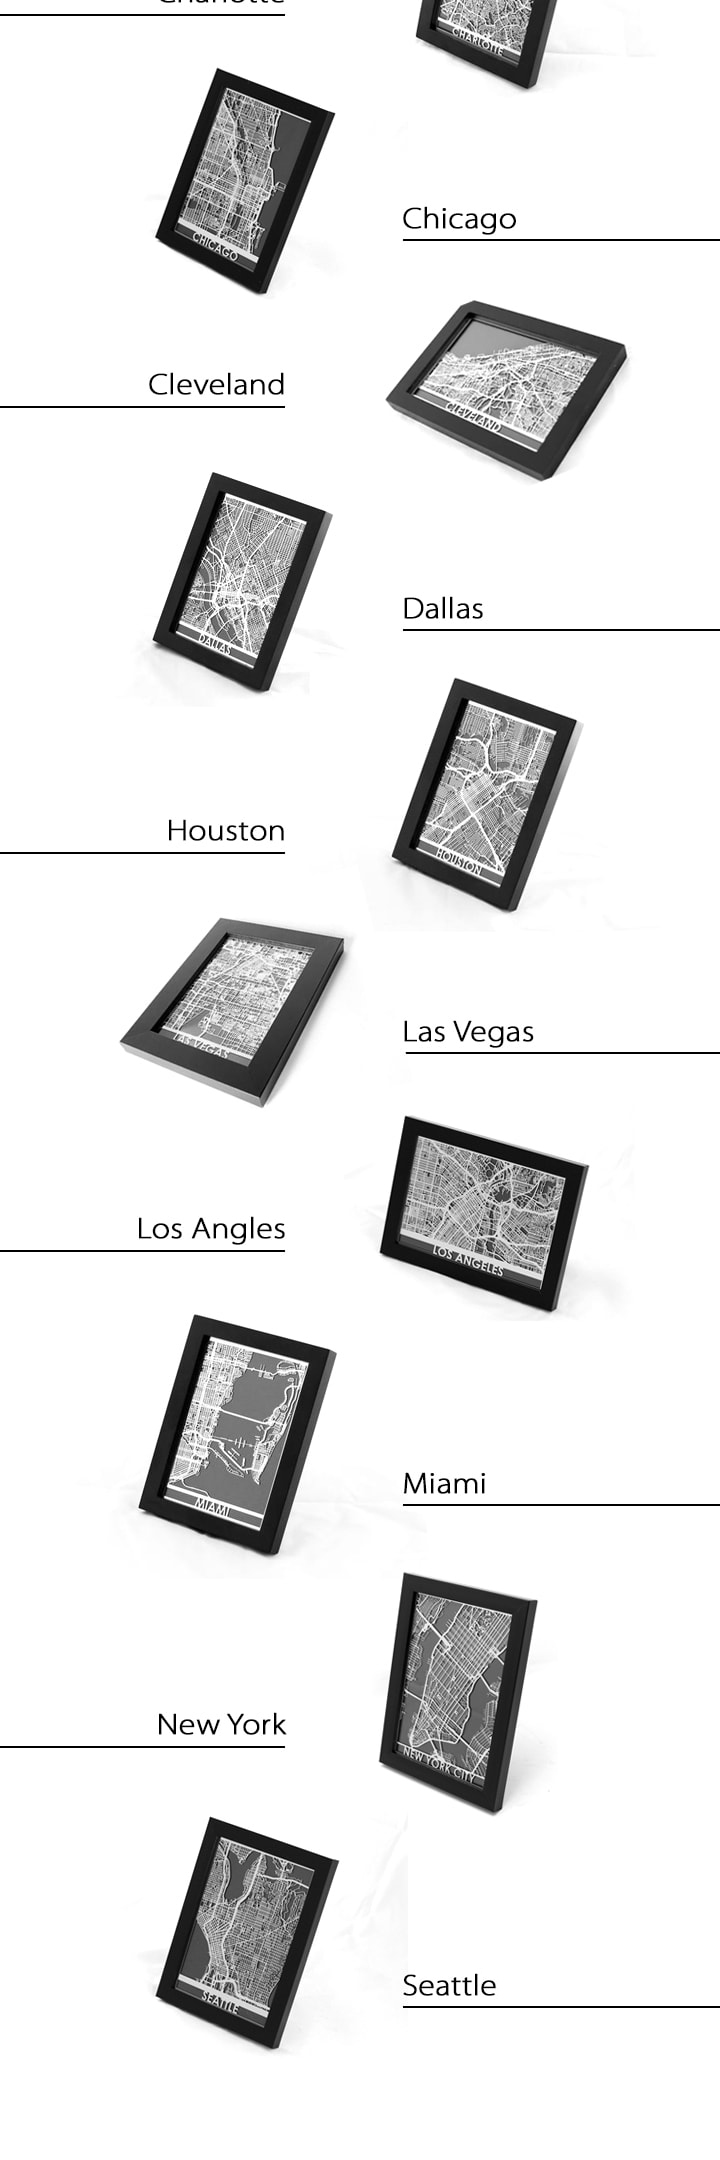 Steel Maps For US Cities Aerial View Places And Travel - Steel us maps